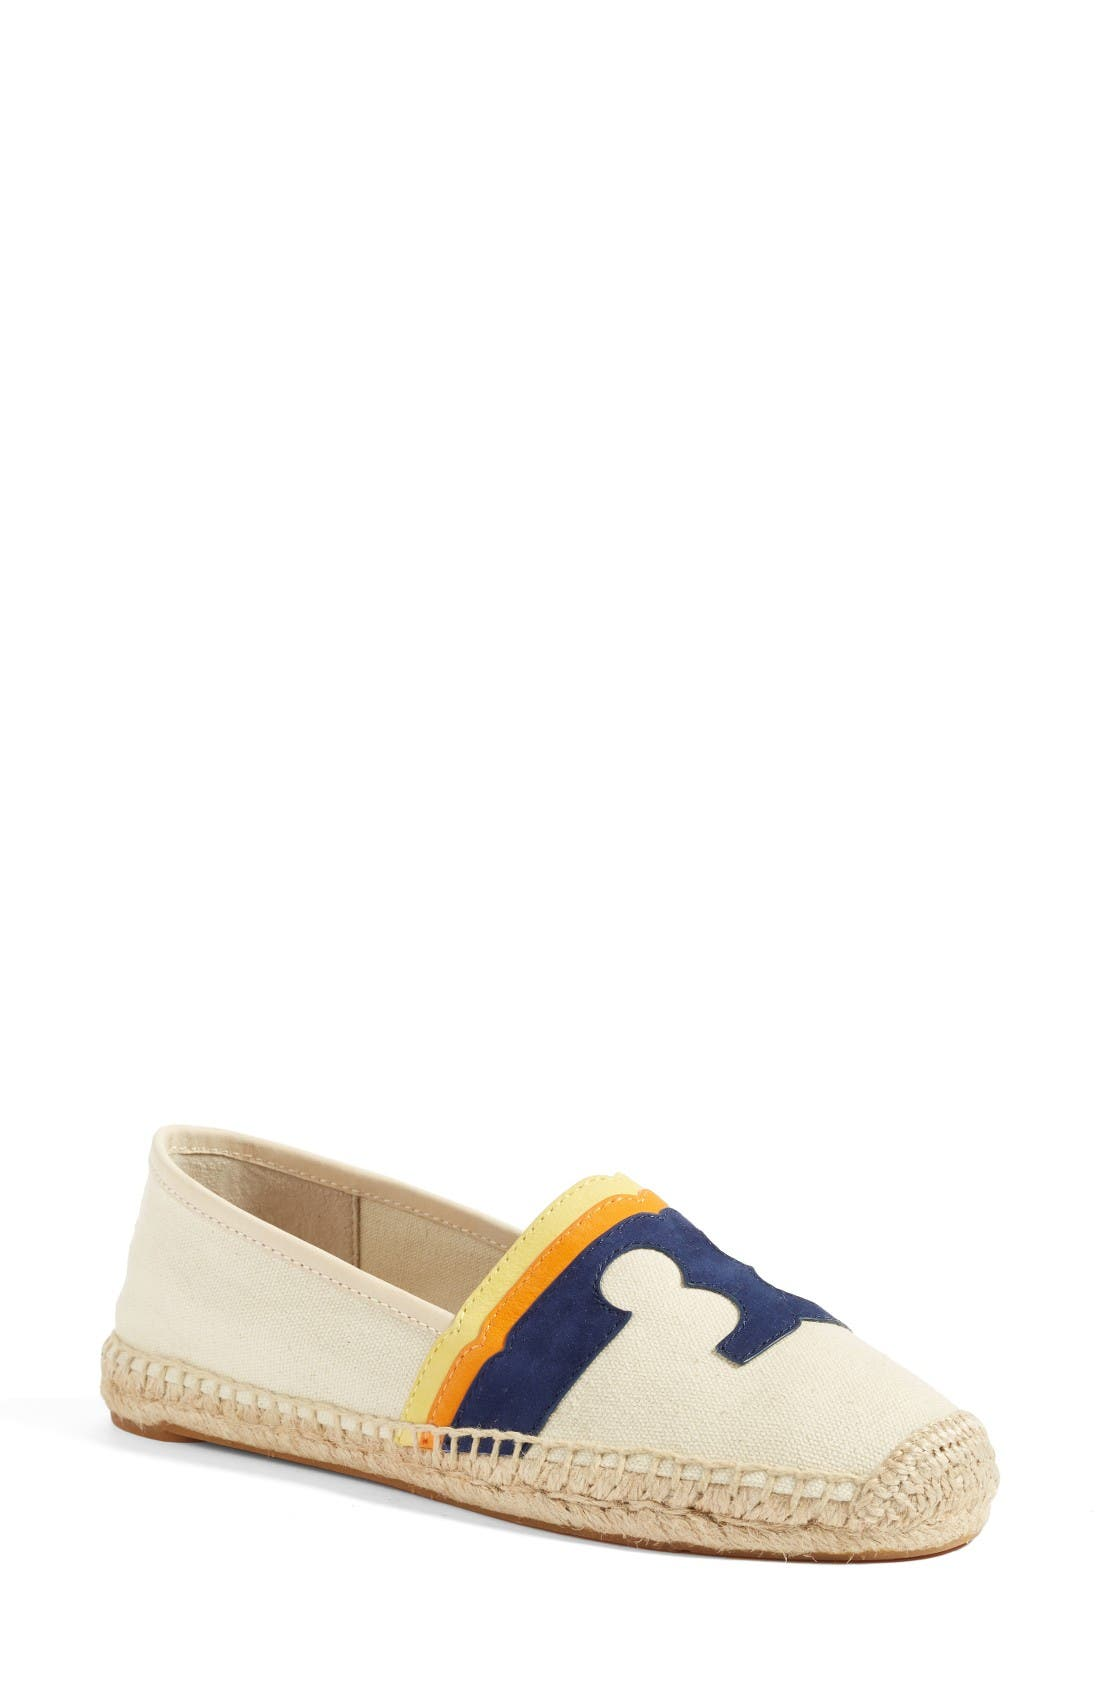 Alternate Image 1 Selected - Tory Burch Laguna Espadrille Flat (Women)